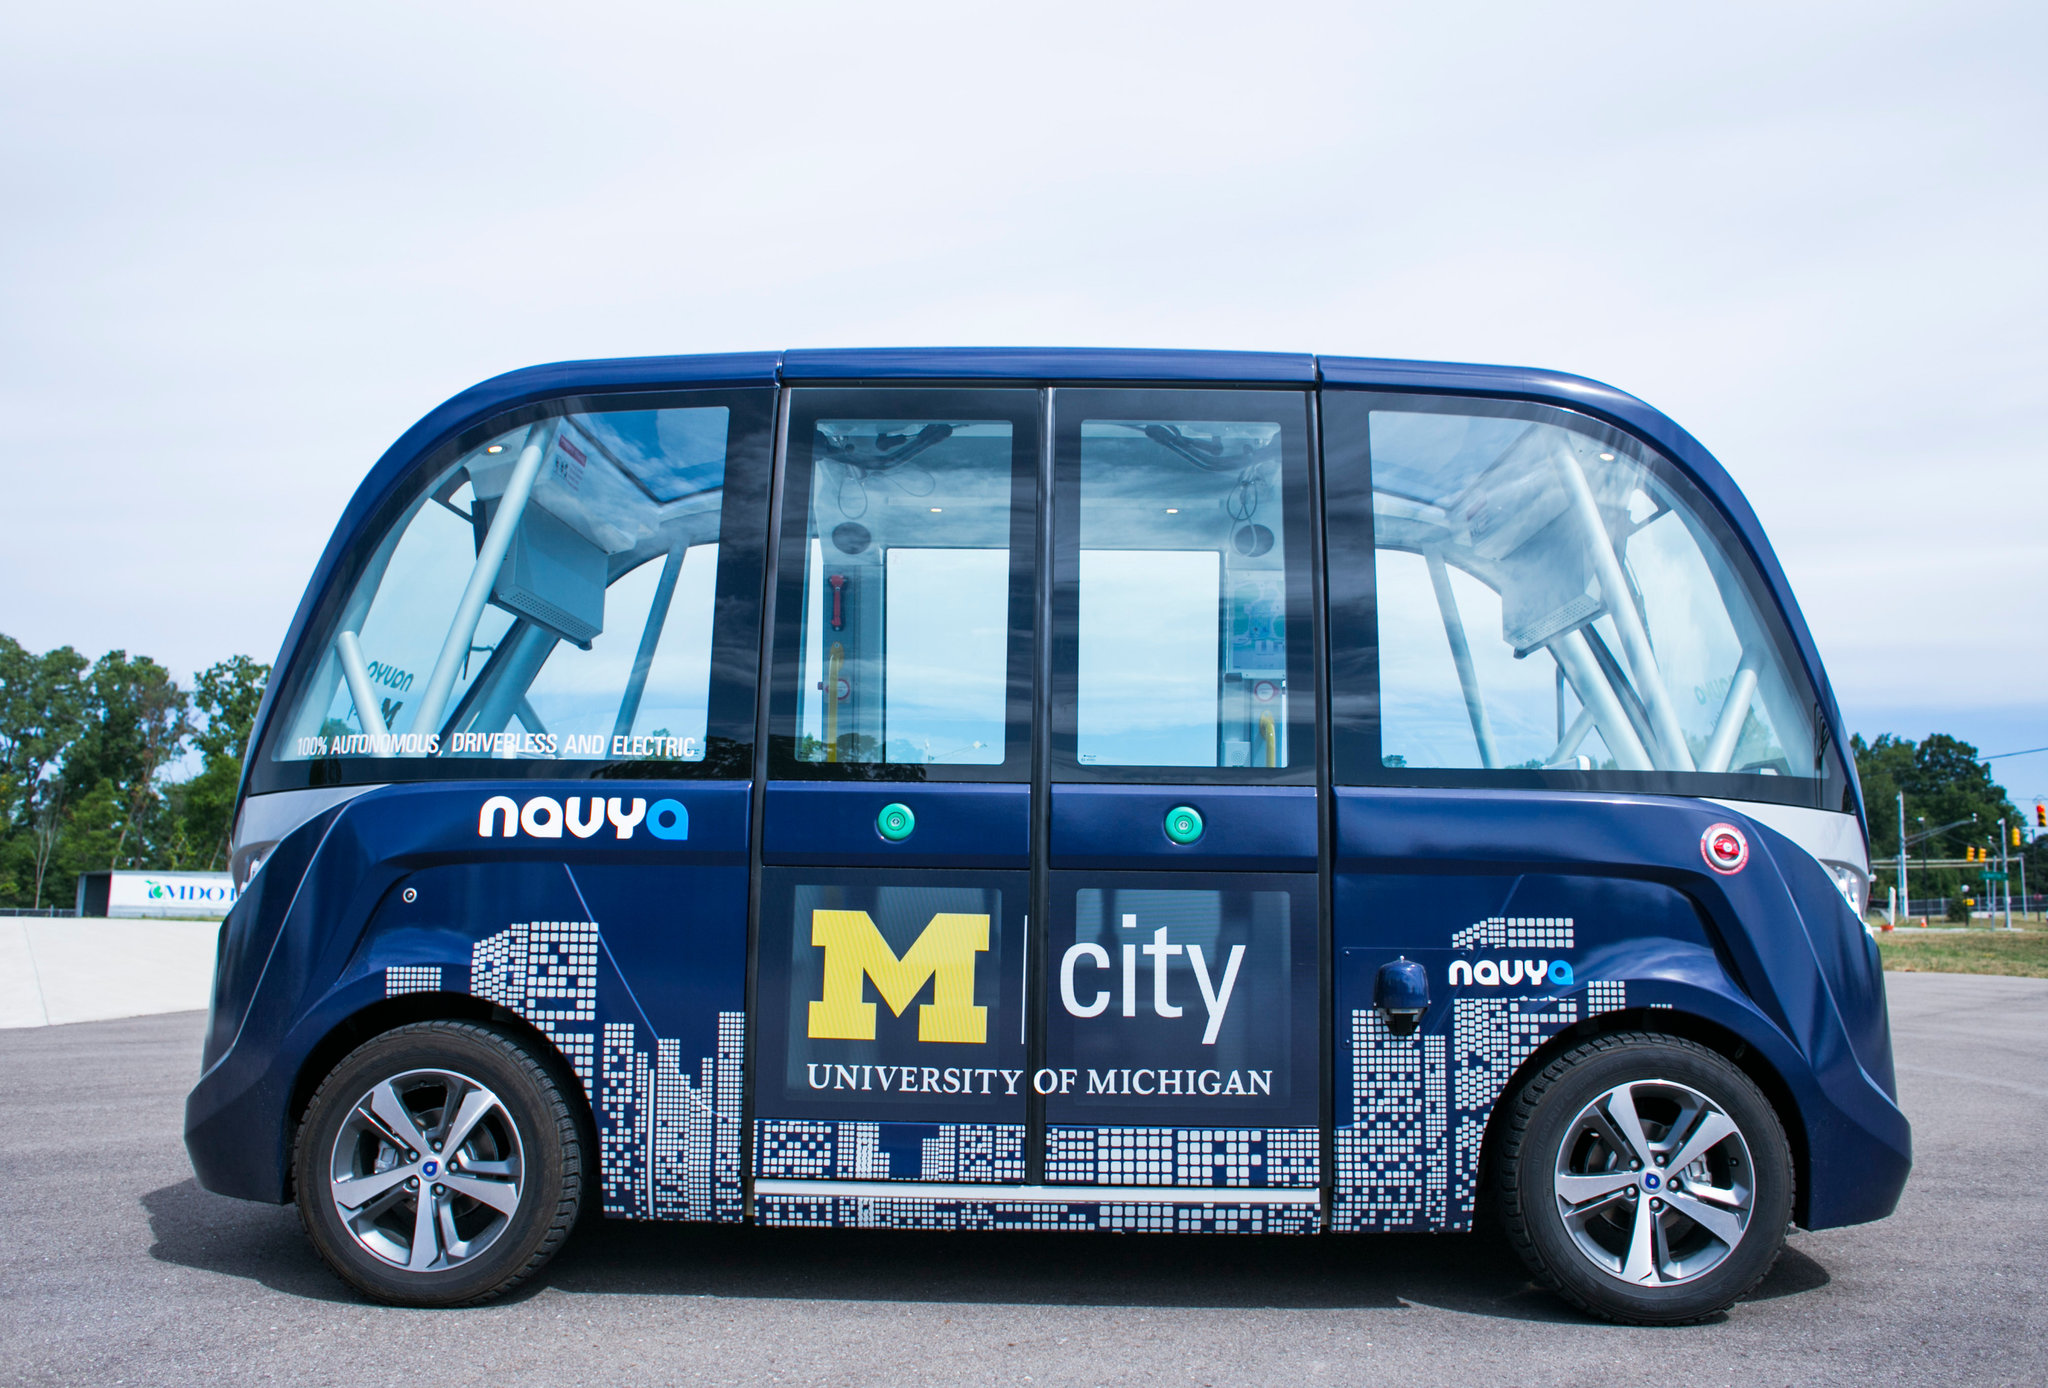 U of Michigan Driverless Car